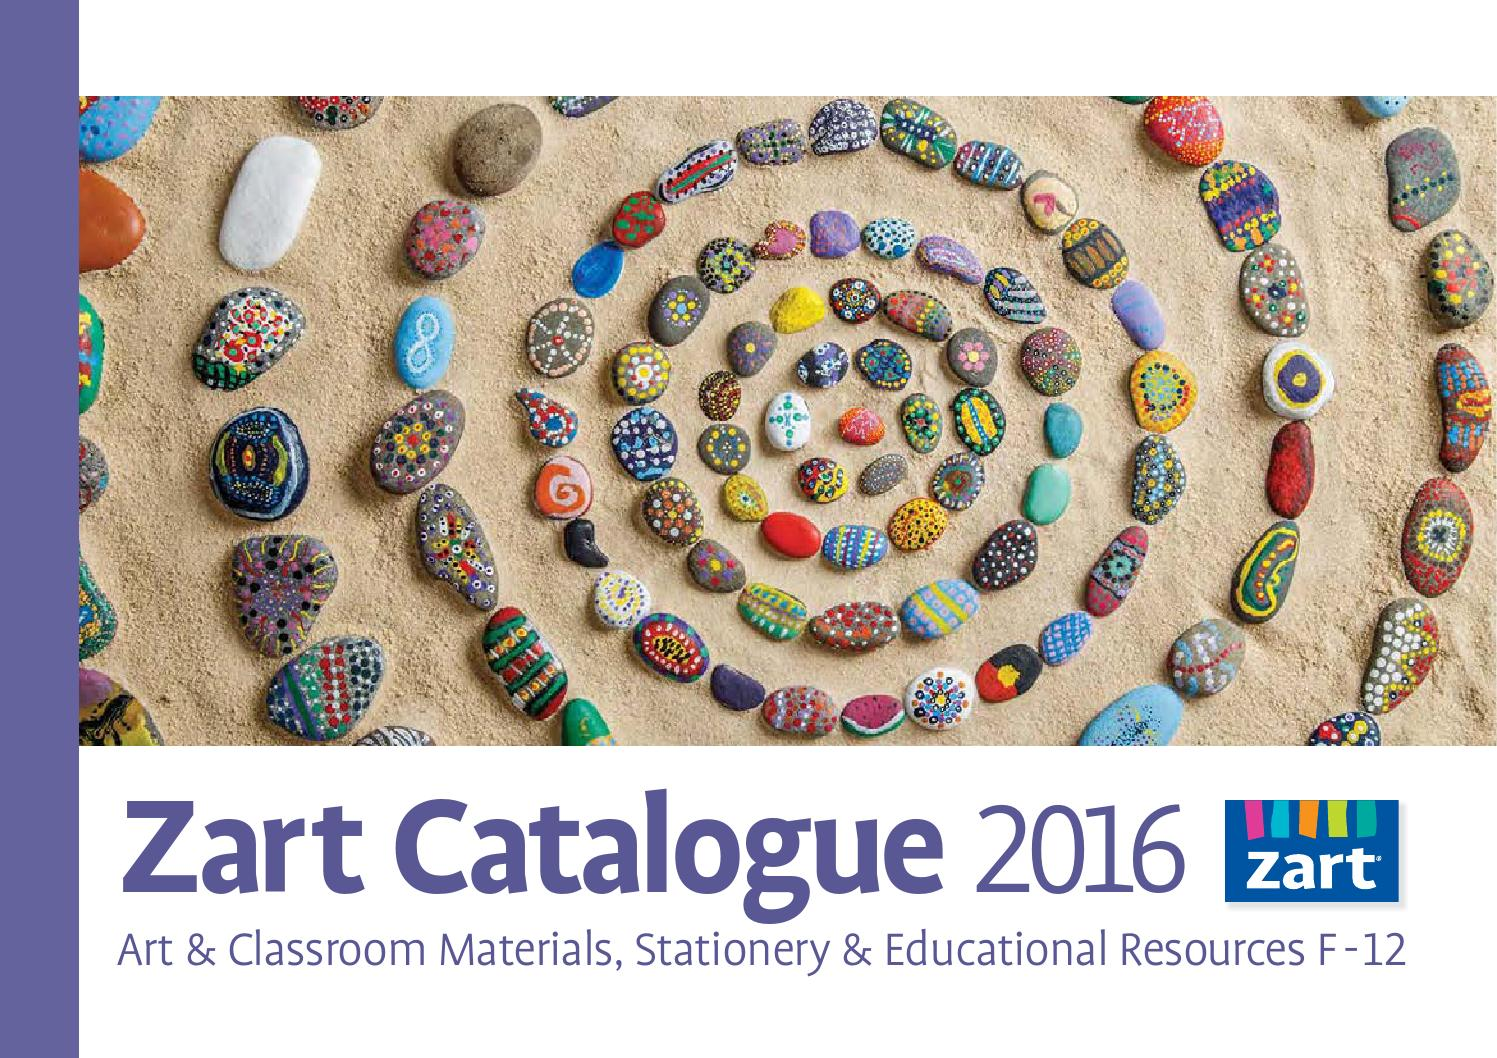 a32693c19aa85 Zart School Catalogue 2016 by Zart : Art, craft and education ...